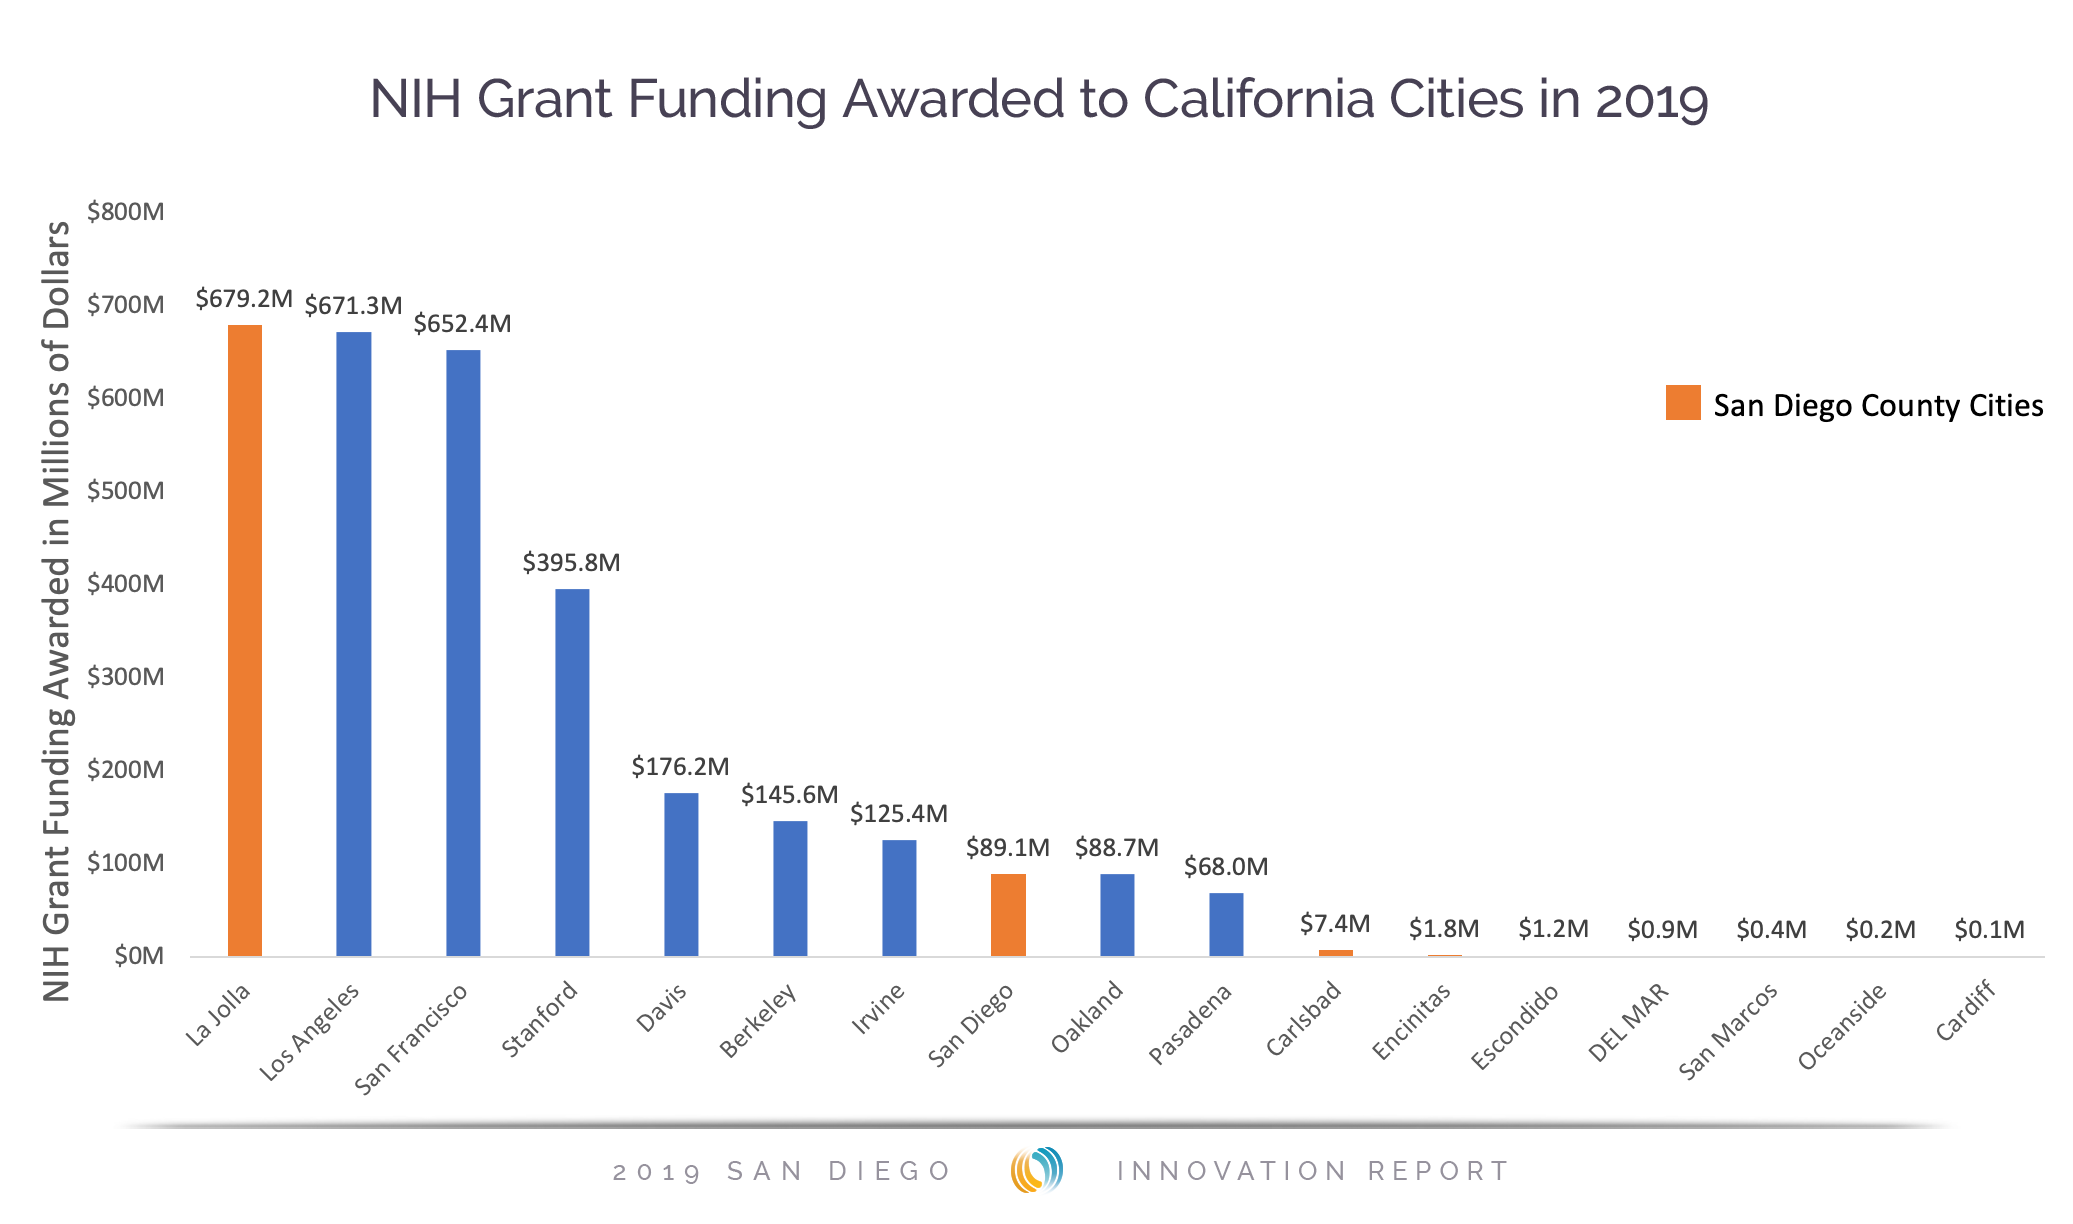 NIH Grant Funding Awarded to California Cities in 2019 - San Diego Innovation Report